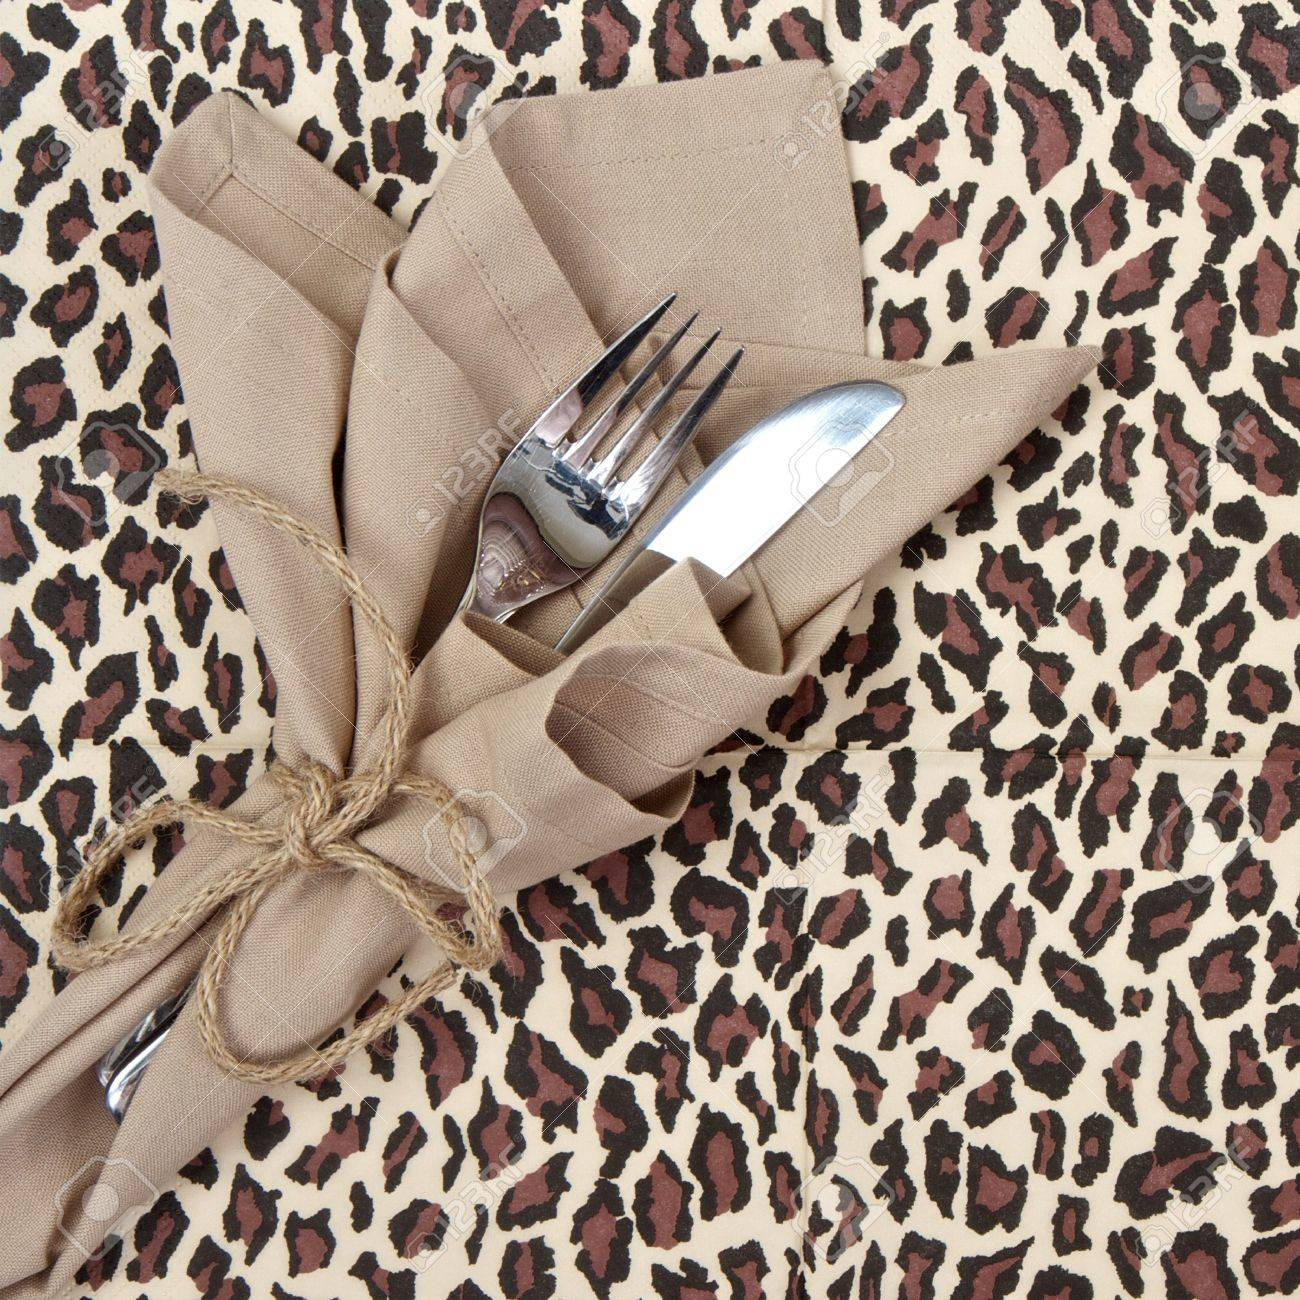 Knife And Fork With Animal Print Tablecloth Stock Photo   14704482